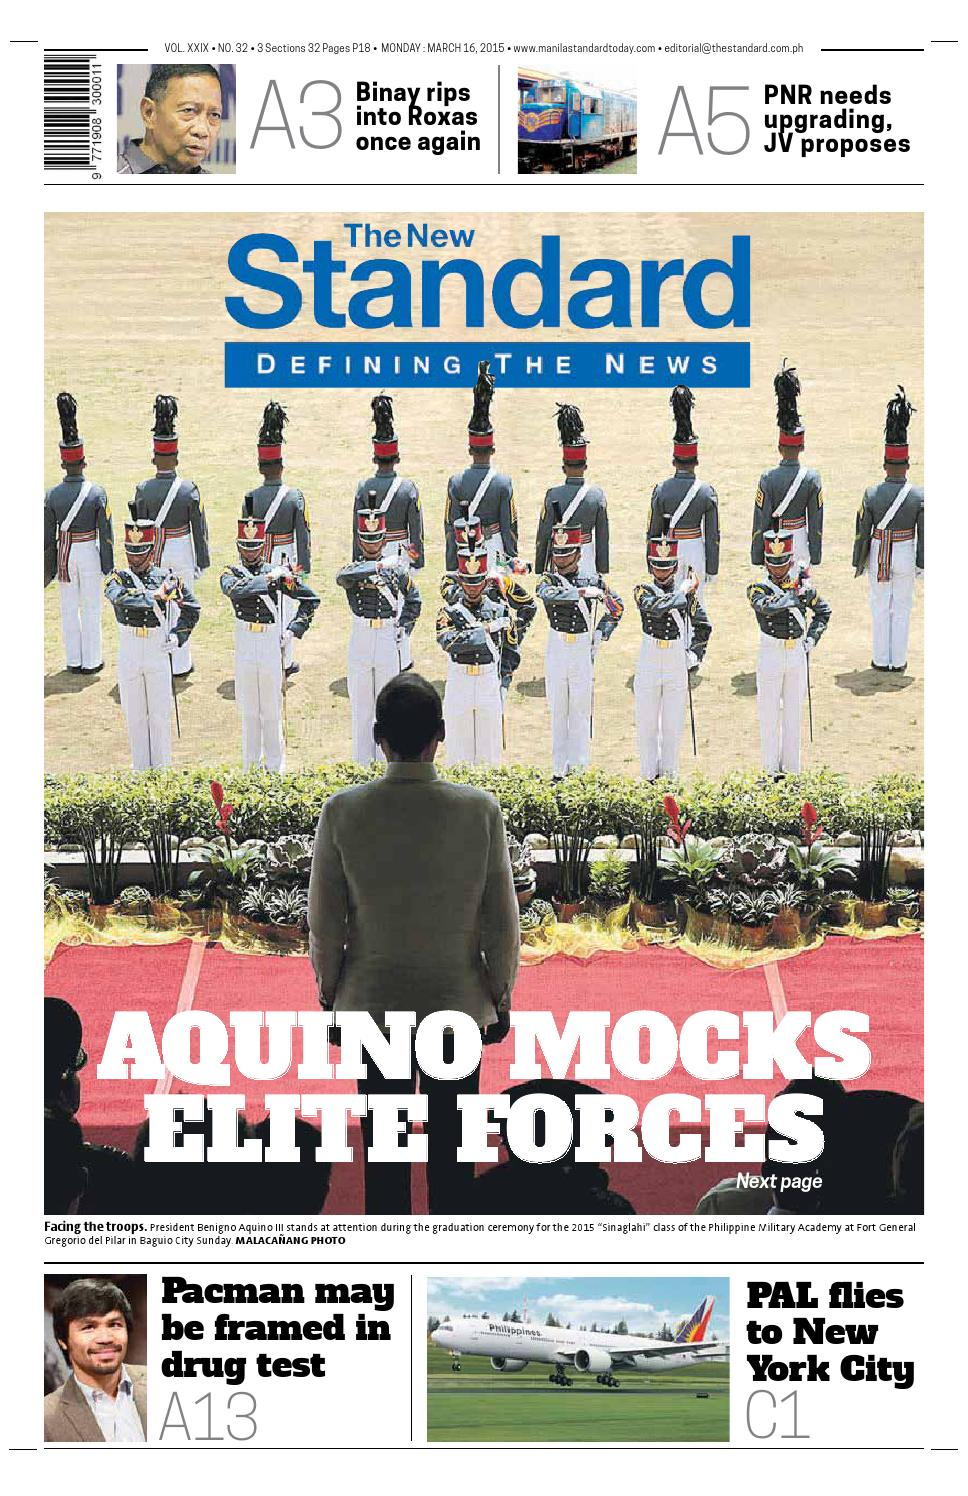 21a5bbdbca3c The Standard - 2015 March 16 - Monday by Manila Standard - issuu